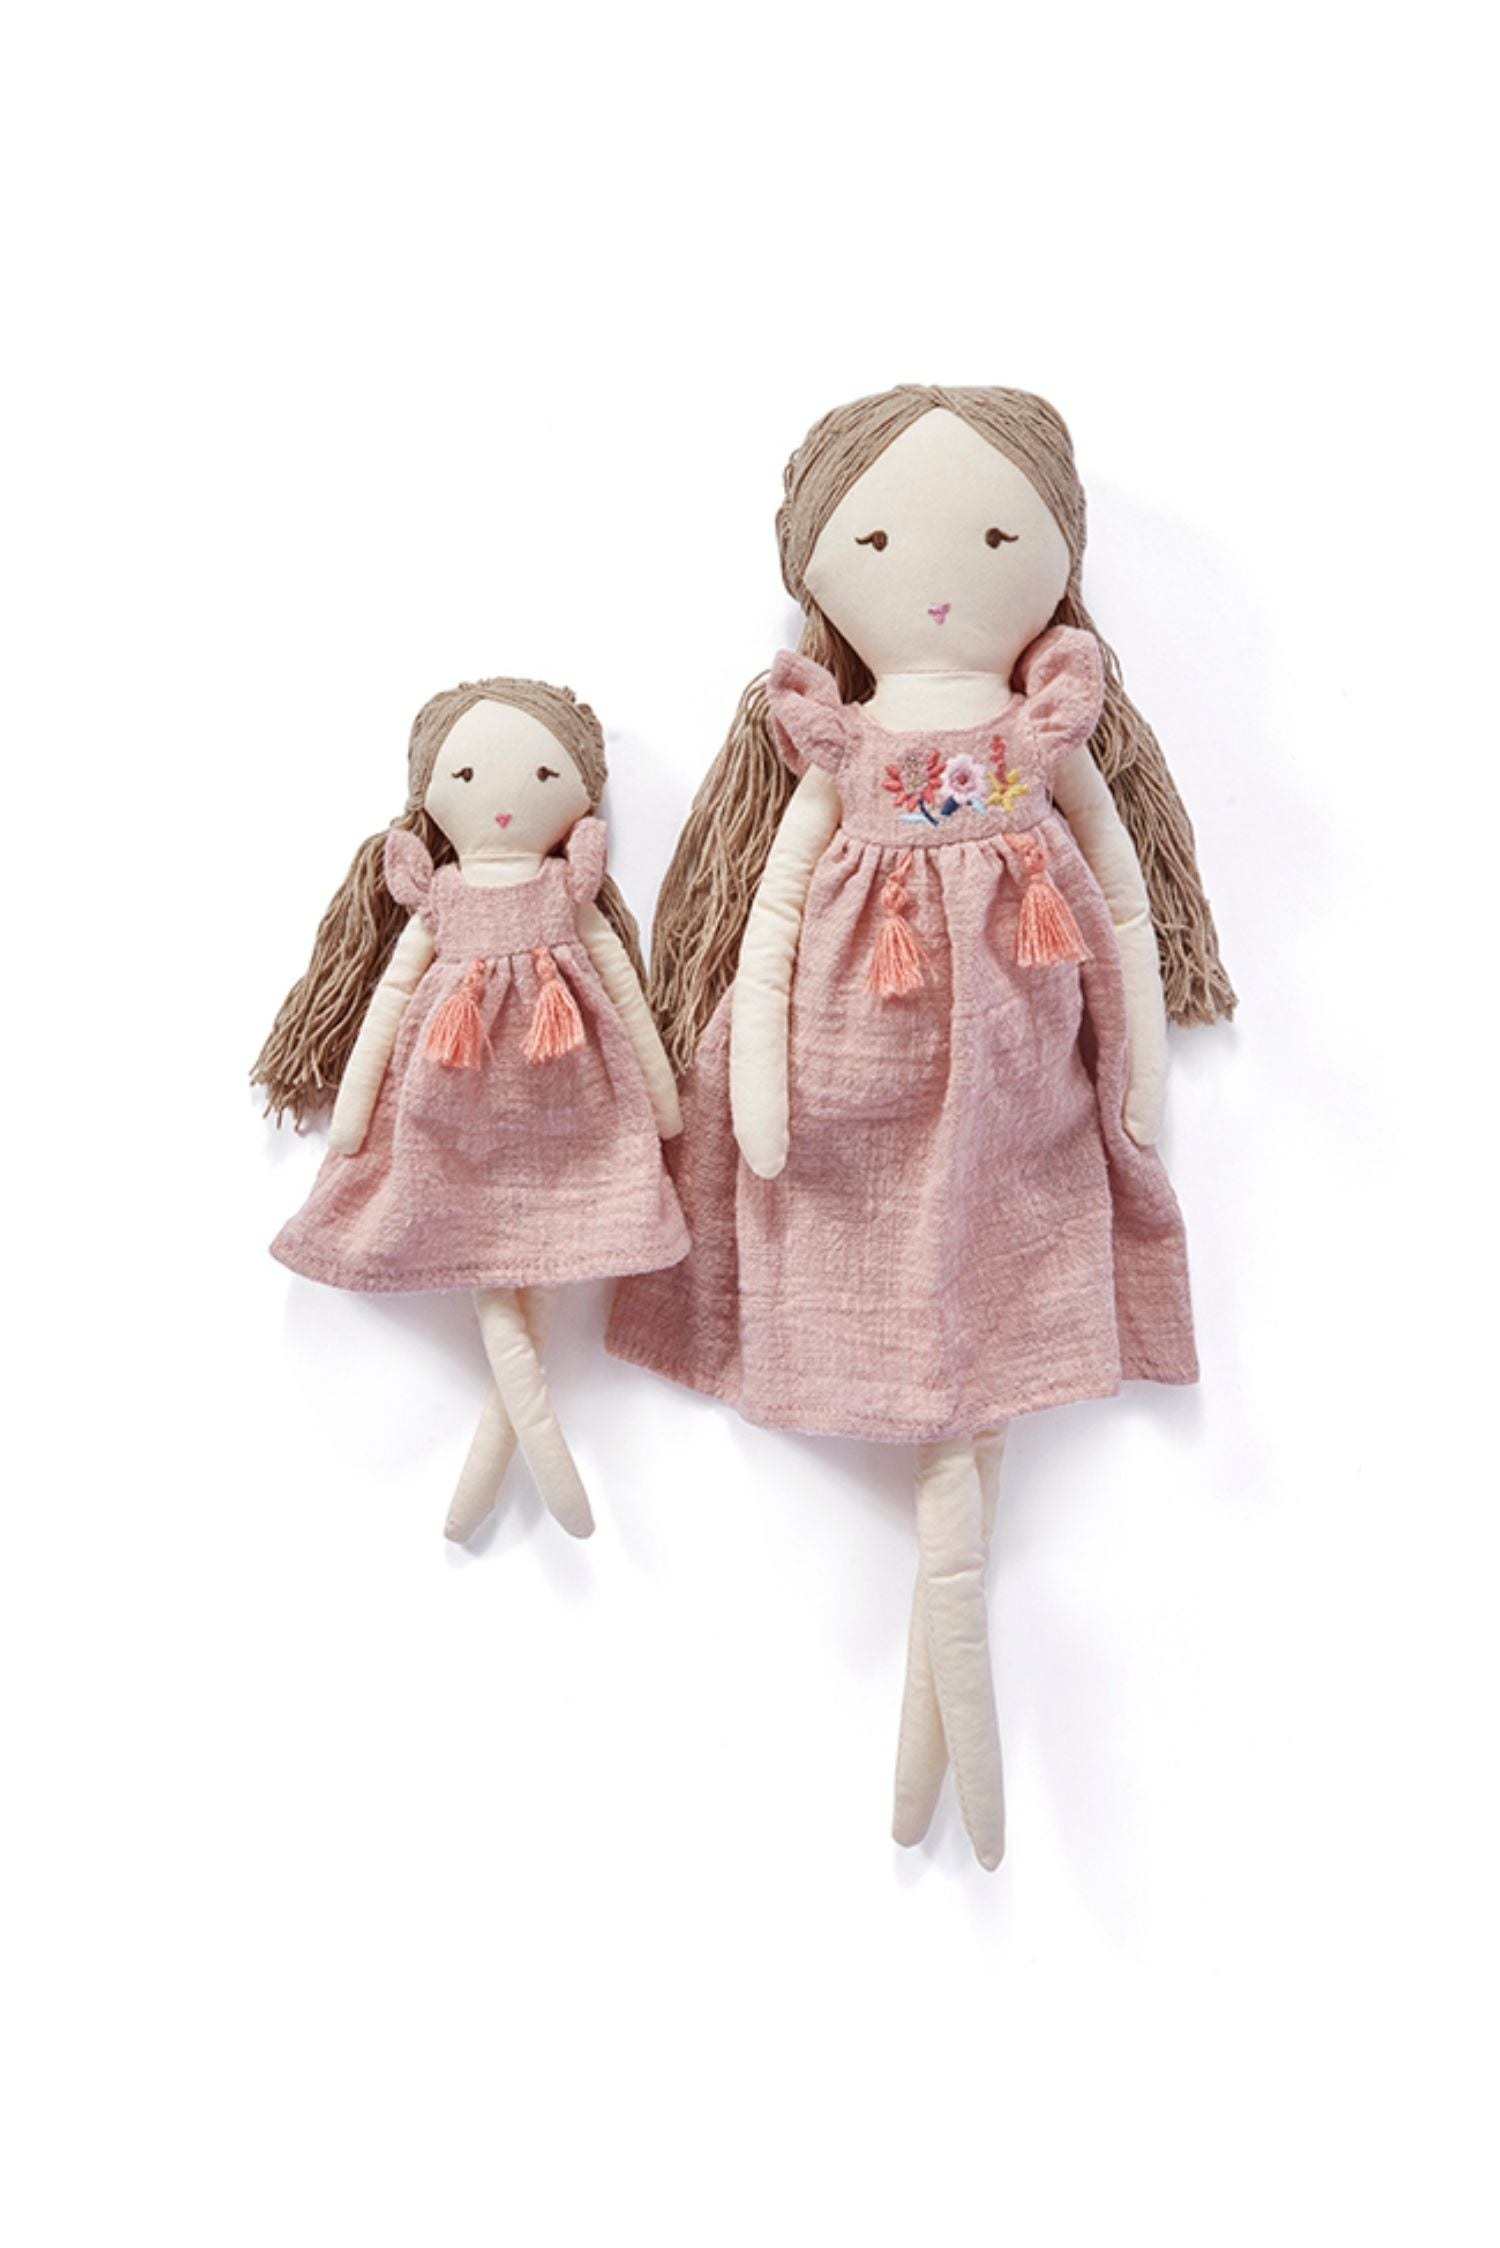 Baby Daisy doll - pink